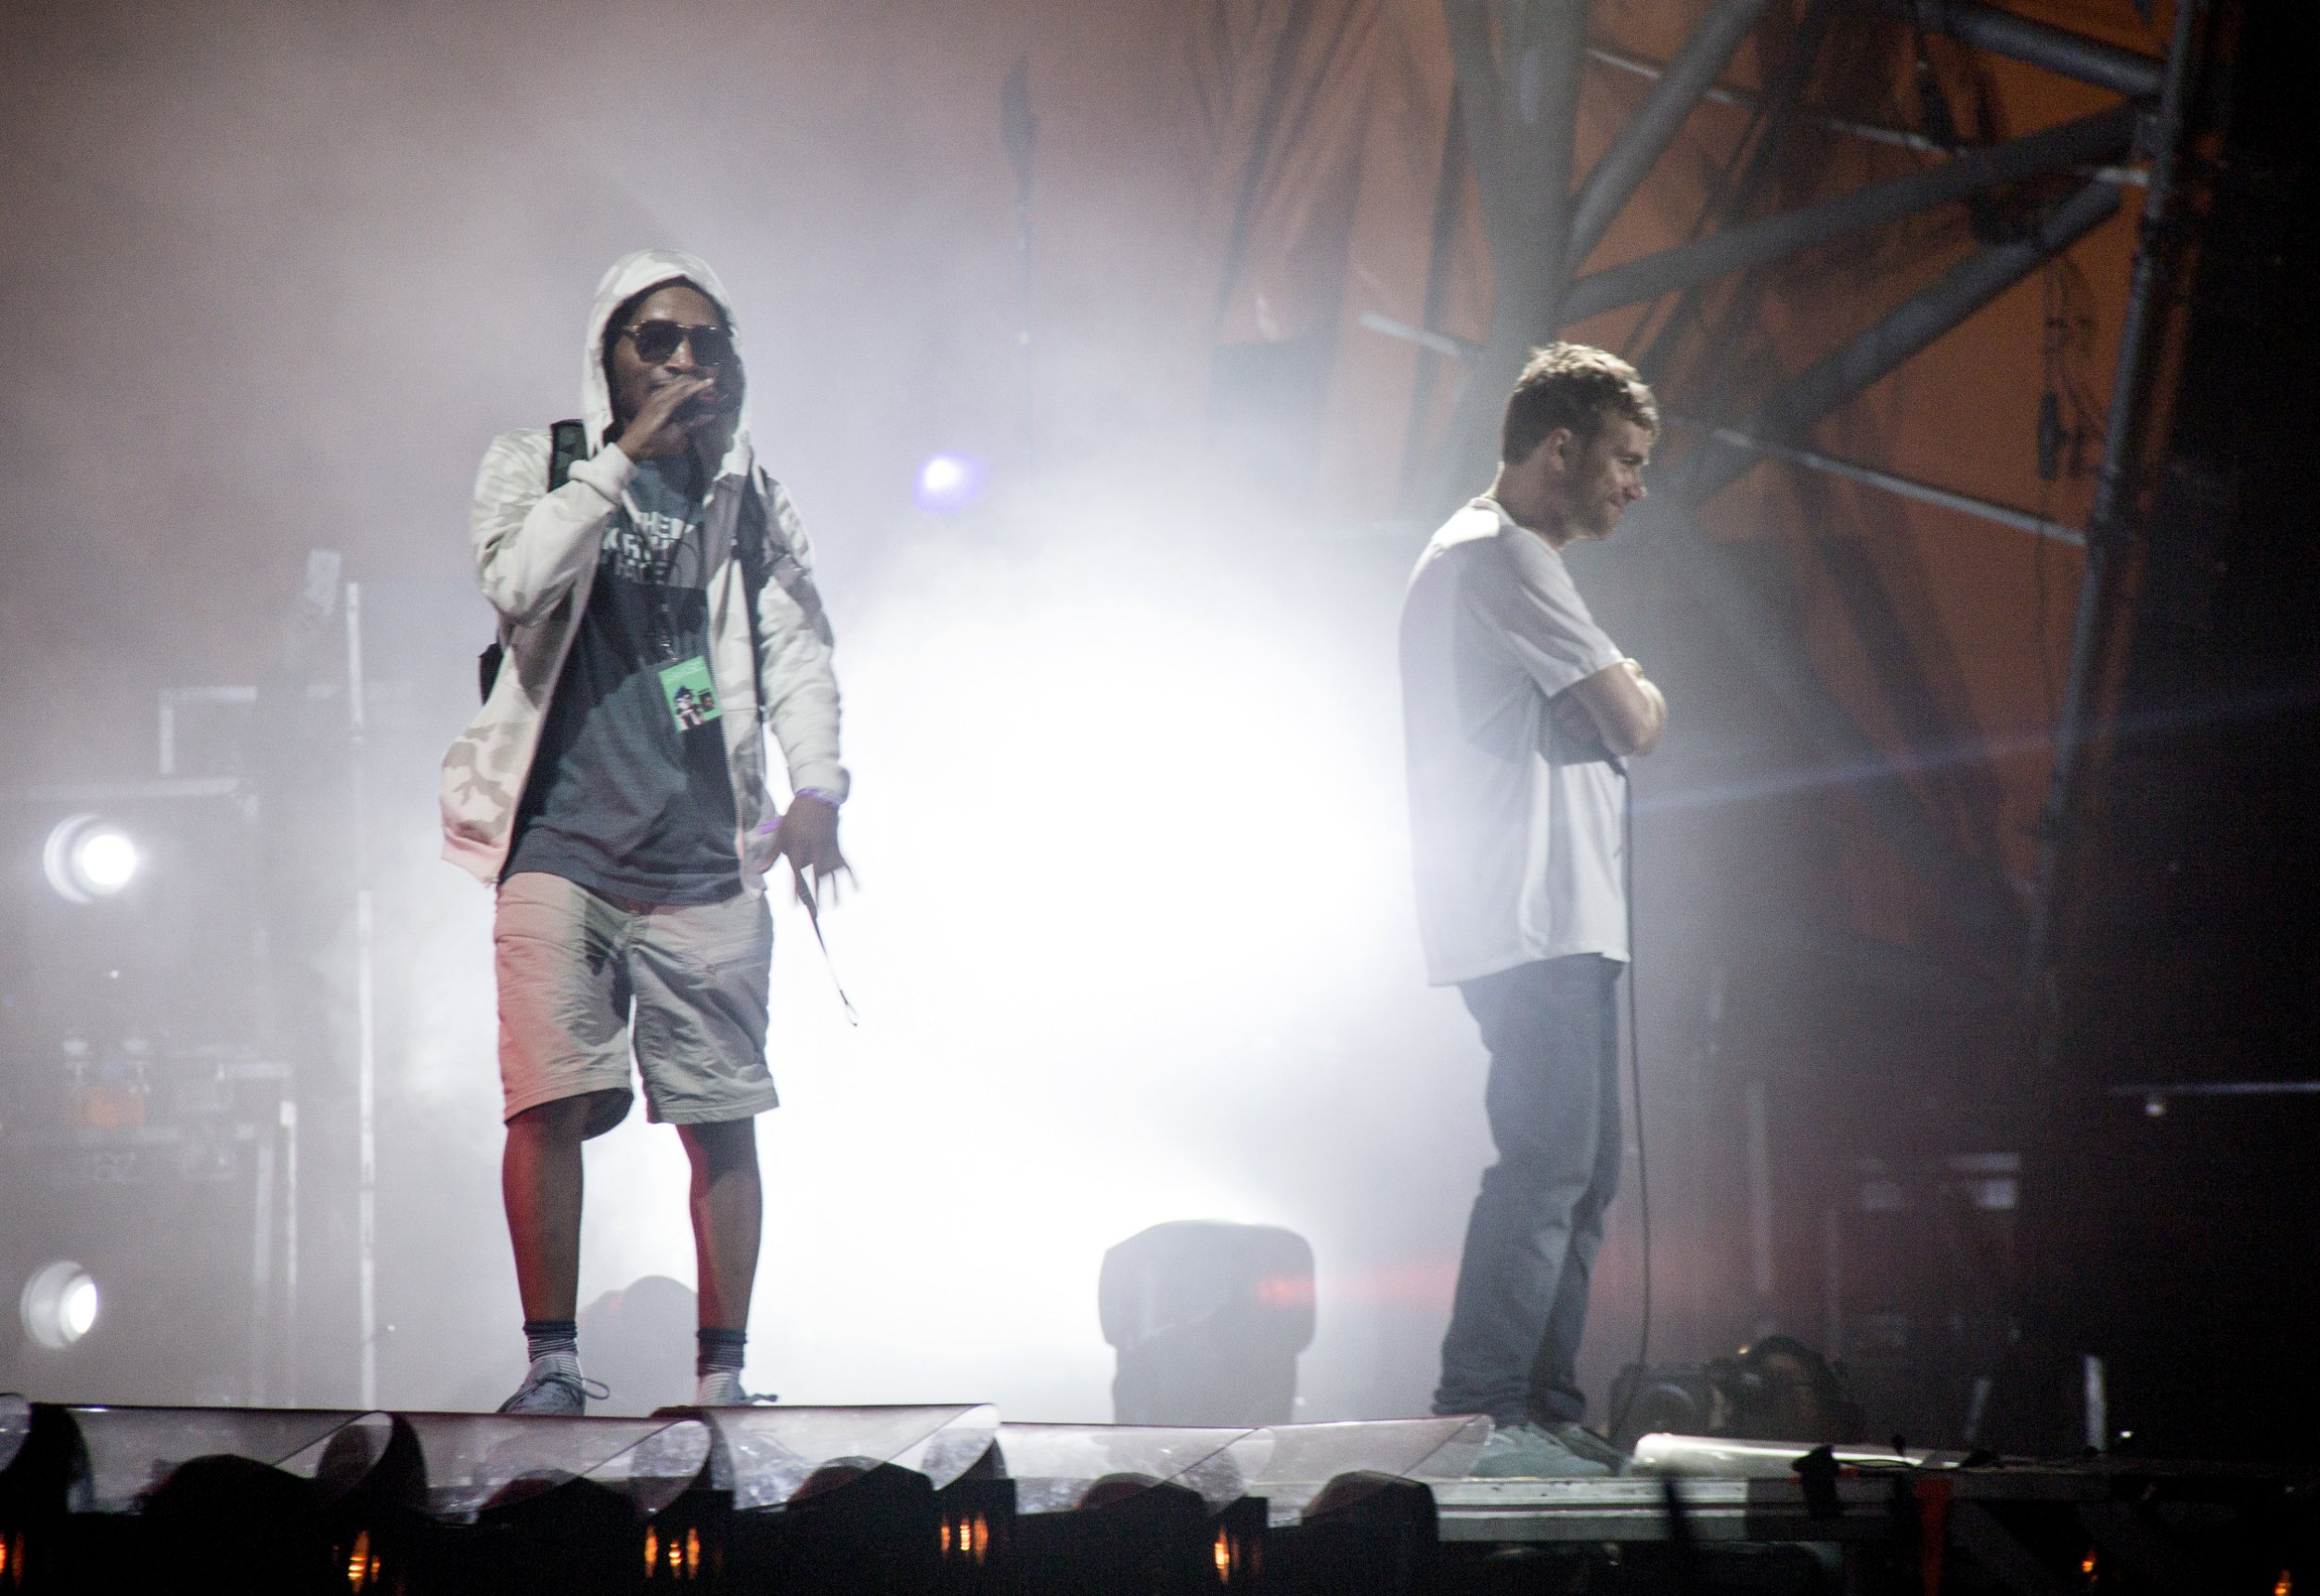 In this July 7, 2018 photo, U.S. rapper Del the Funky Homosapien walks towards the edge of the stage seconds before falling during the performance of British band Gorillaz at the Orange Stage during the Roskilde Festival in Roskilde, Denmark. (Erling Brodersen/Ritzau Scanpix via AP)